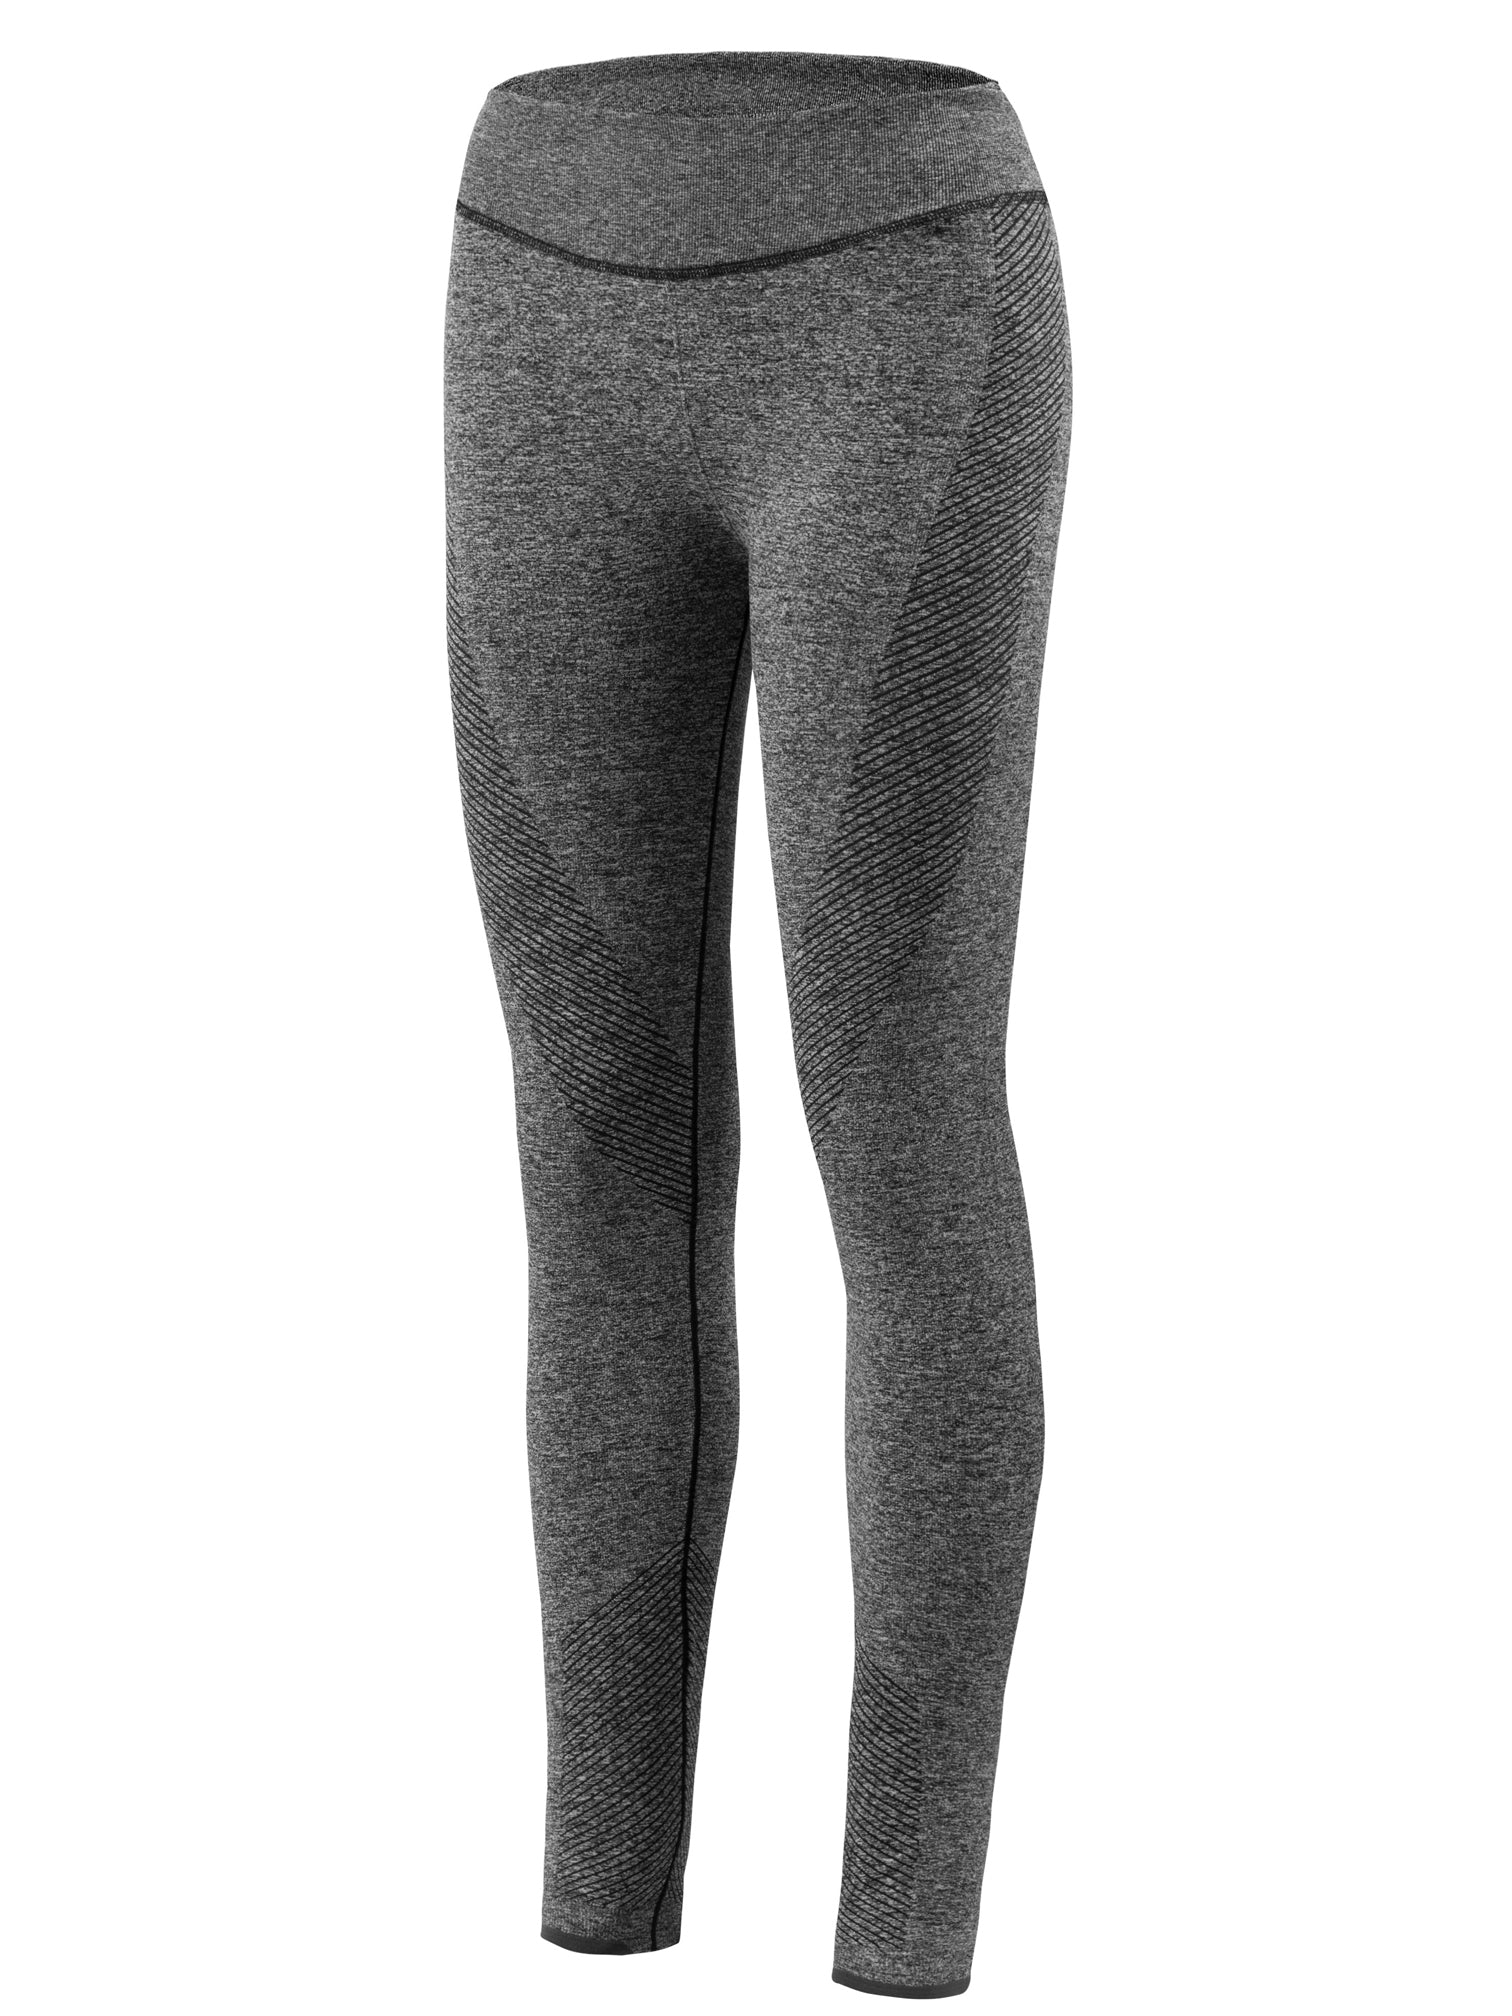 REV'IT Airborne LL Ladies Base Layer Pants - 421 Moto Gear